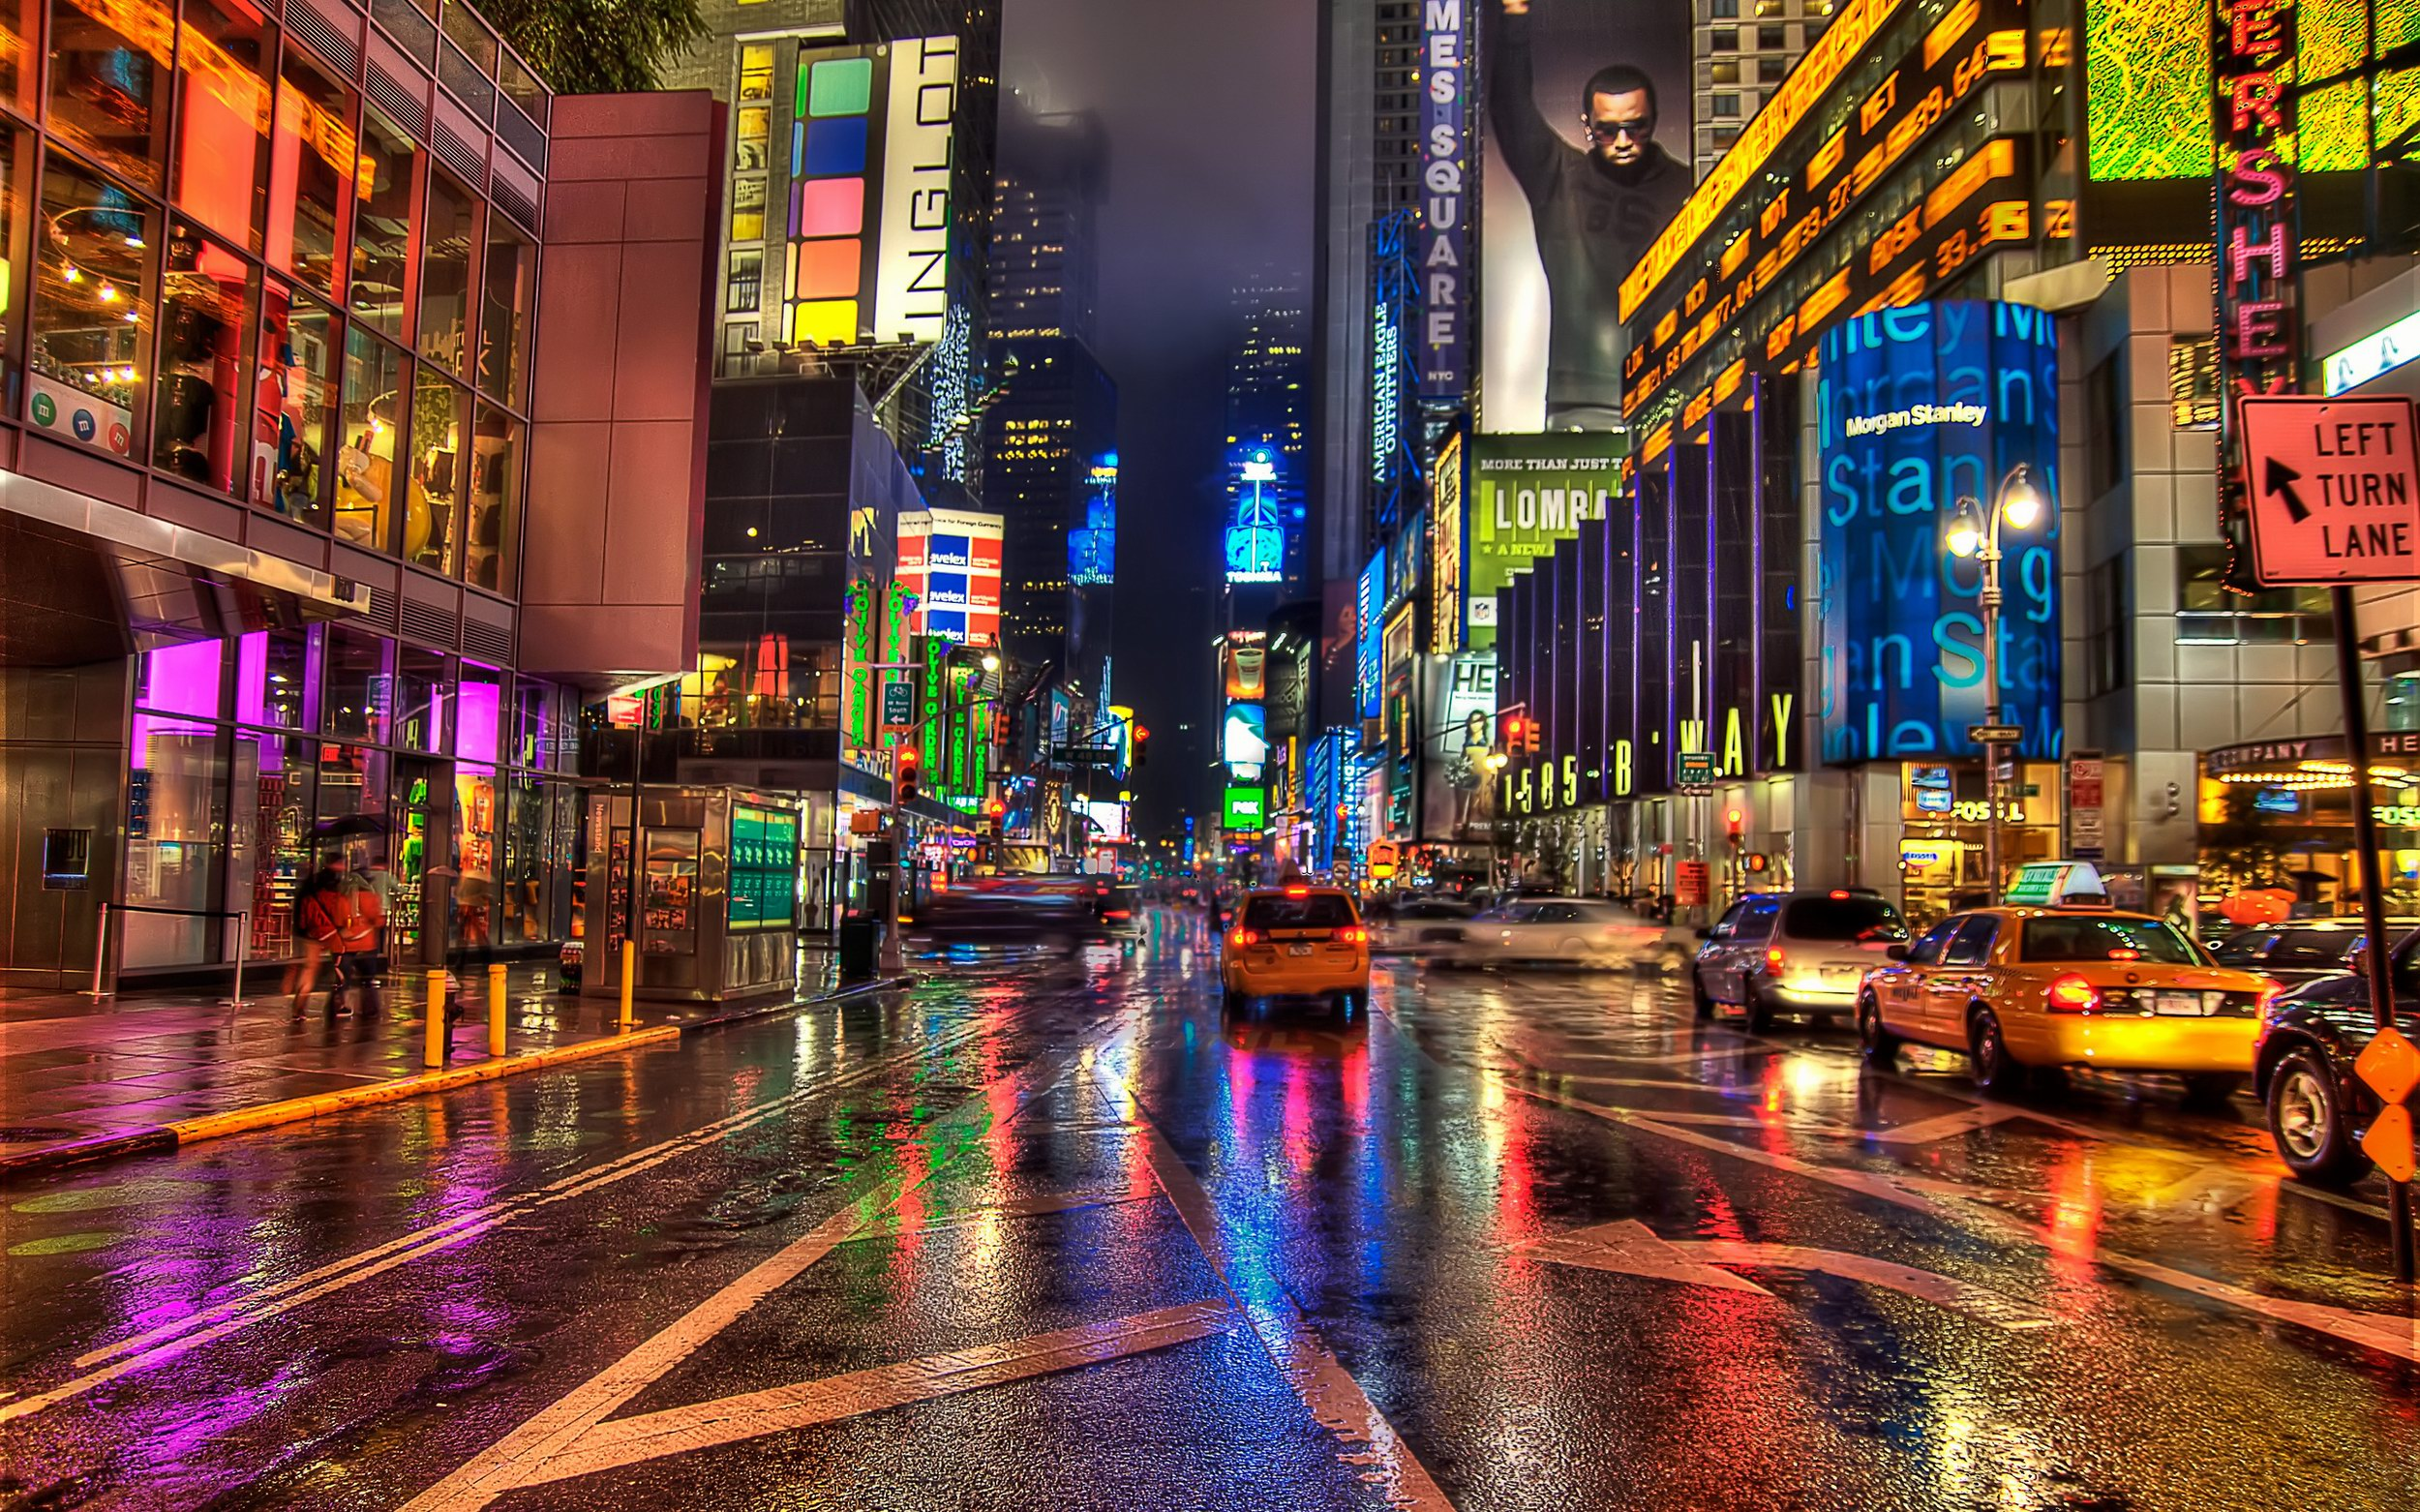 New York City Times Square Wallpaper hd wallpaper background desktop 2500x1562